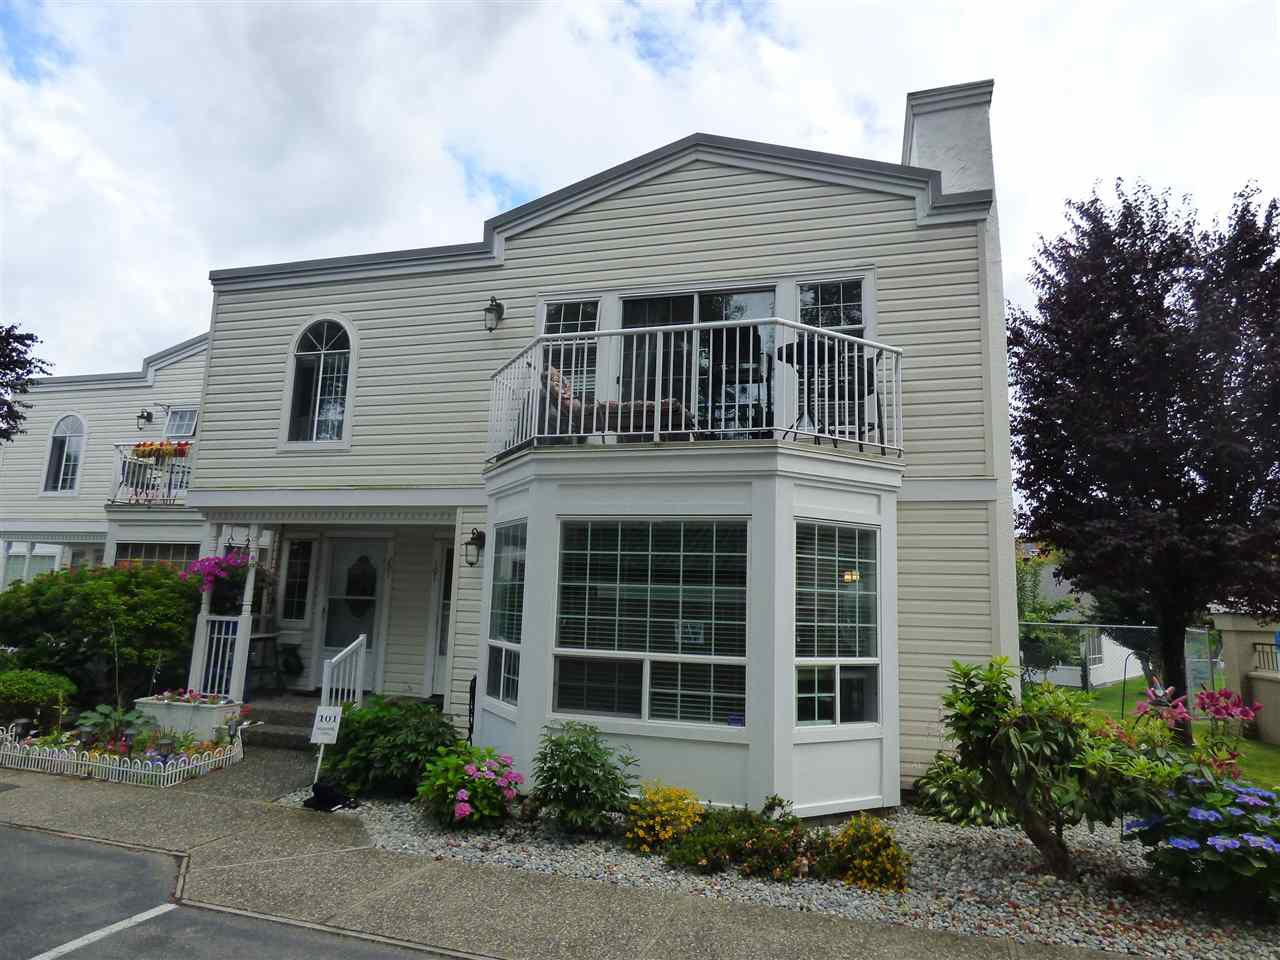 """Main Photo: 101 9540 COOK Street in Chilliwack: Chilliwack N Yale-Well Townhouse for sale in """"ROSE ARBOR"""" : MLS®# R2388420"""